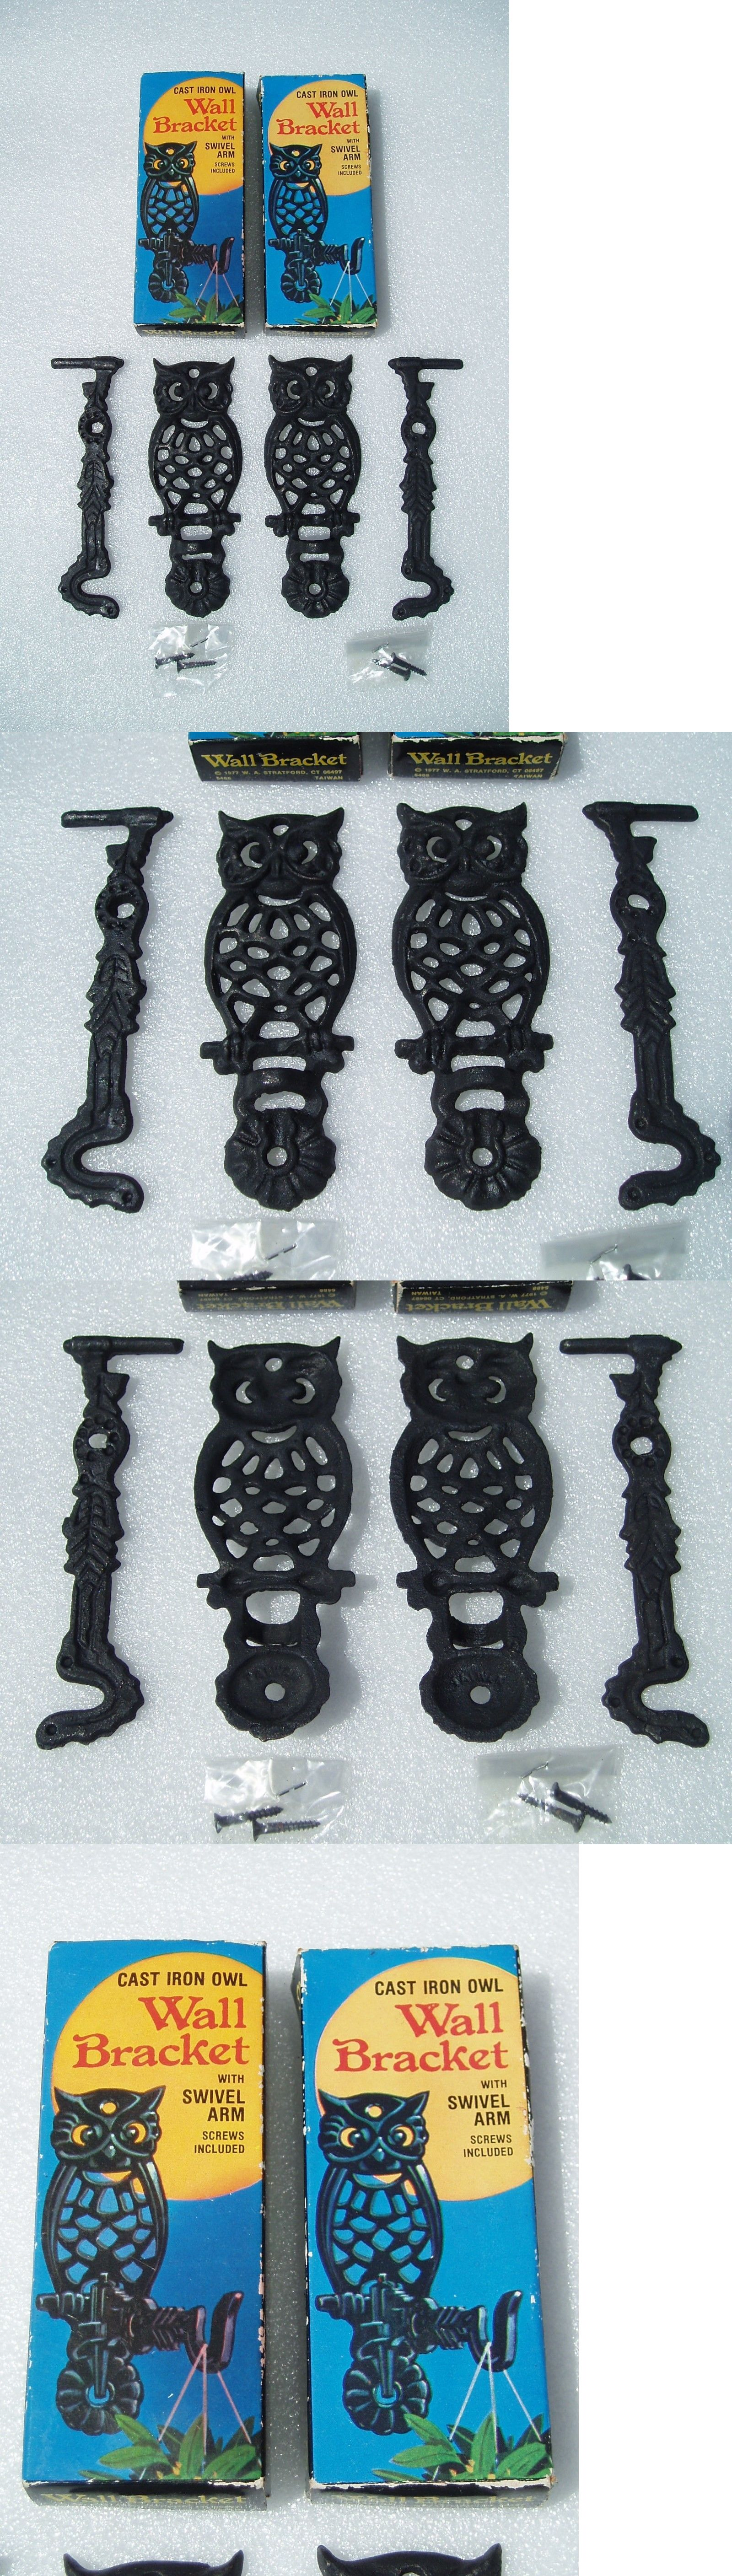 Plant Hooks and Hangers 134671: 2 Owl Cast Iron Wall ... on home depot outdoor plants, home depot boot scrapers, home depot garden center plants, home depot pet supplies, home depot plants names, home depot garden accents, home depot bells, home depot clothing, home depot holiday decor, home depot artificial plants, home depot hoses, home depot hide a key, wire pot hangers, home depot plate holders, home depot cupolas, home depot bowls, home depot paper towel holders, home depot indoor plants, home depot crafts, home depot book ends,